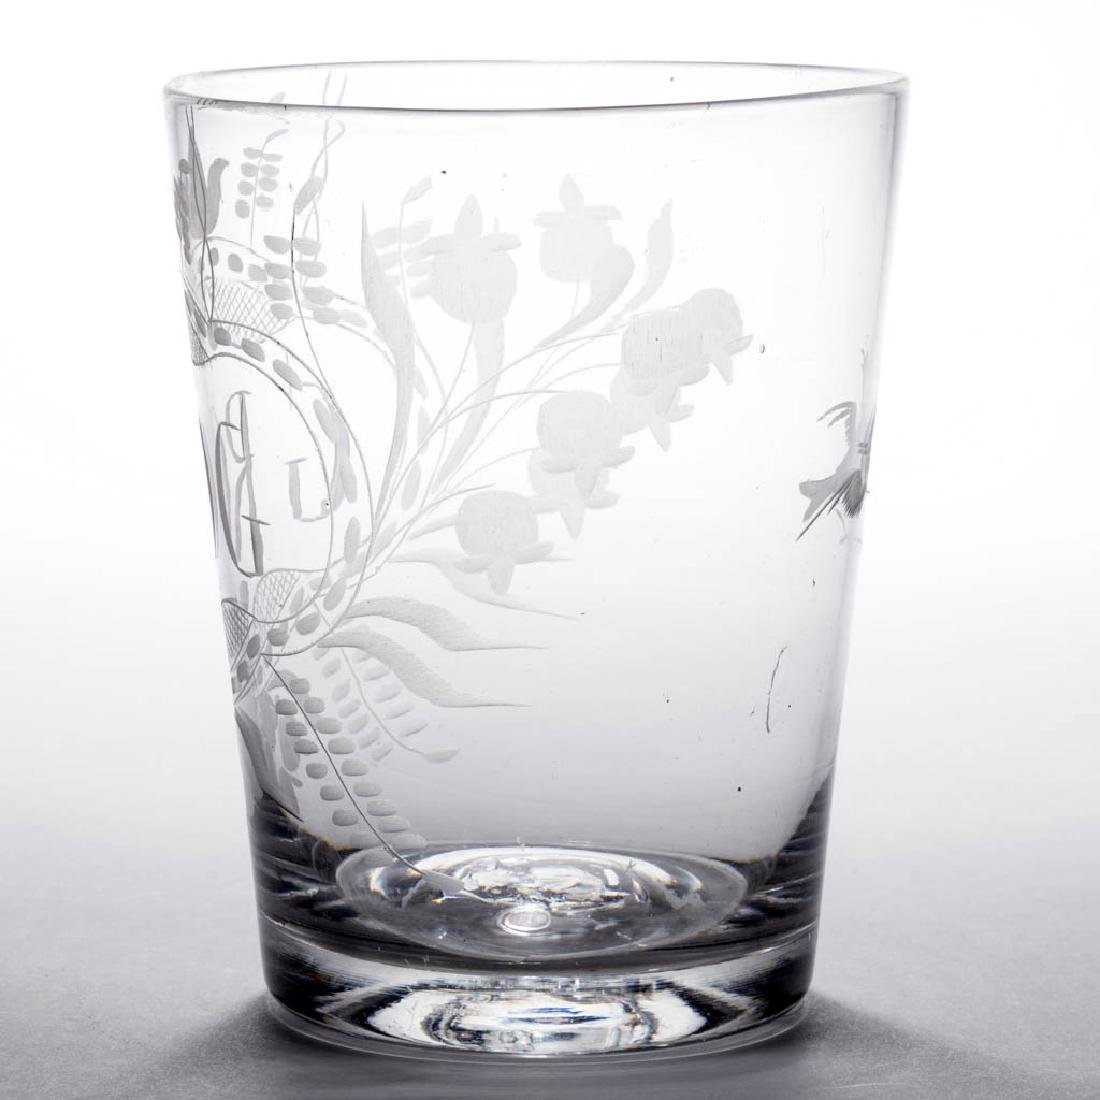 FREE-BLOWN AND ENGRAVED FLIP GLASS - 2